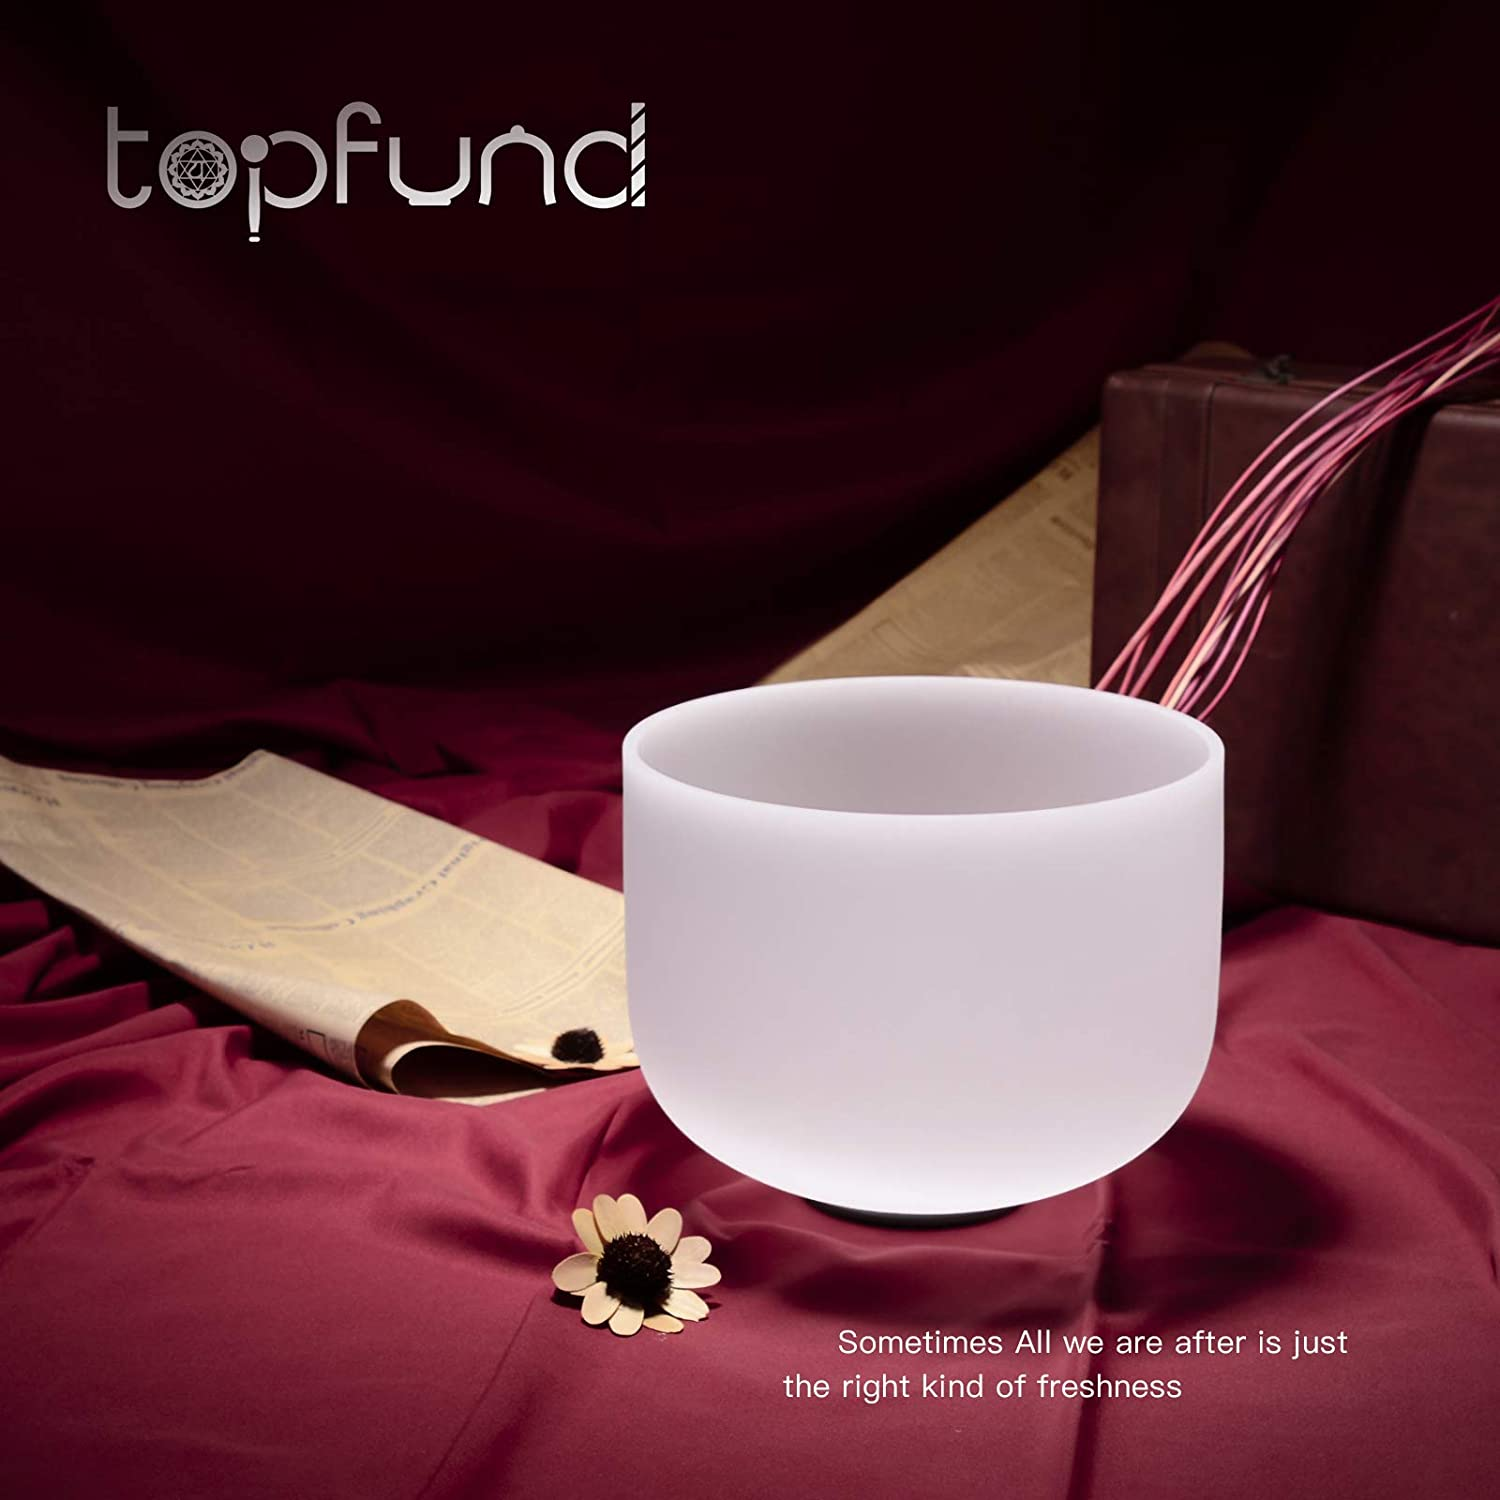 TOPFUND G Note Crystal Singing Bowl Throat Chakra Blue Color 10 inch Heavy Duty Crystal Singing Bowl Carrying Case Singing Bowl Suede Striker O-ring included